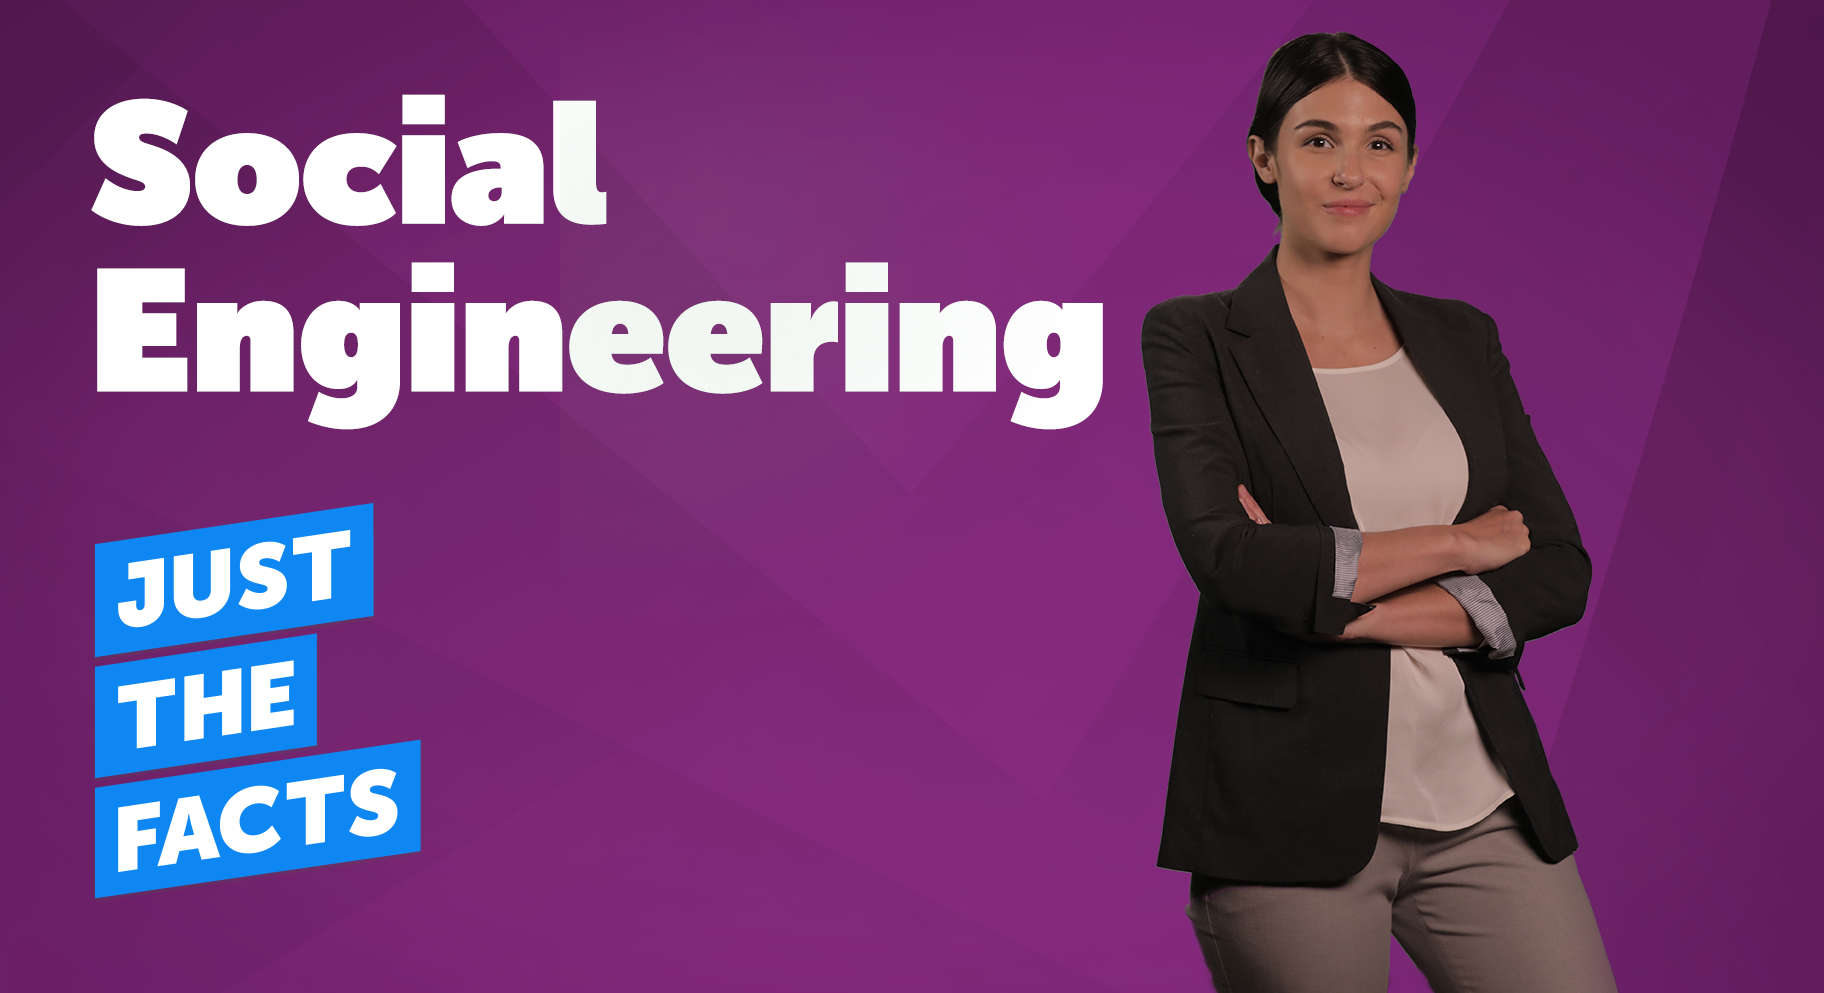 Just the Facts: Social Engineering